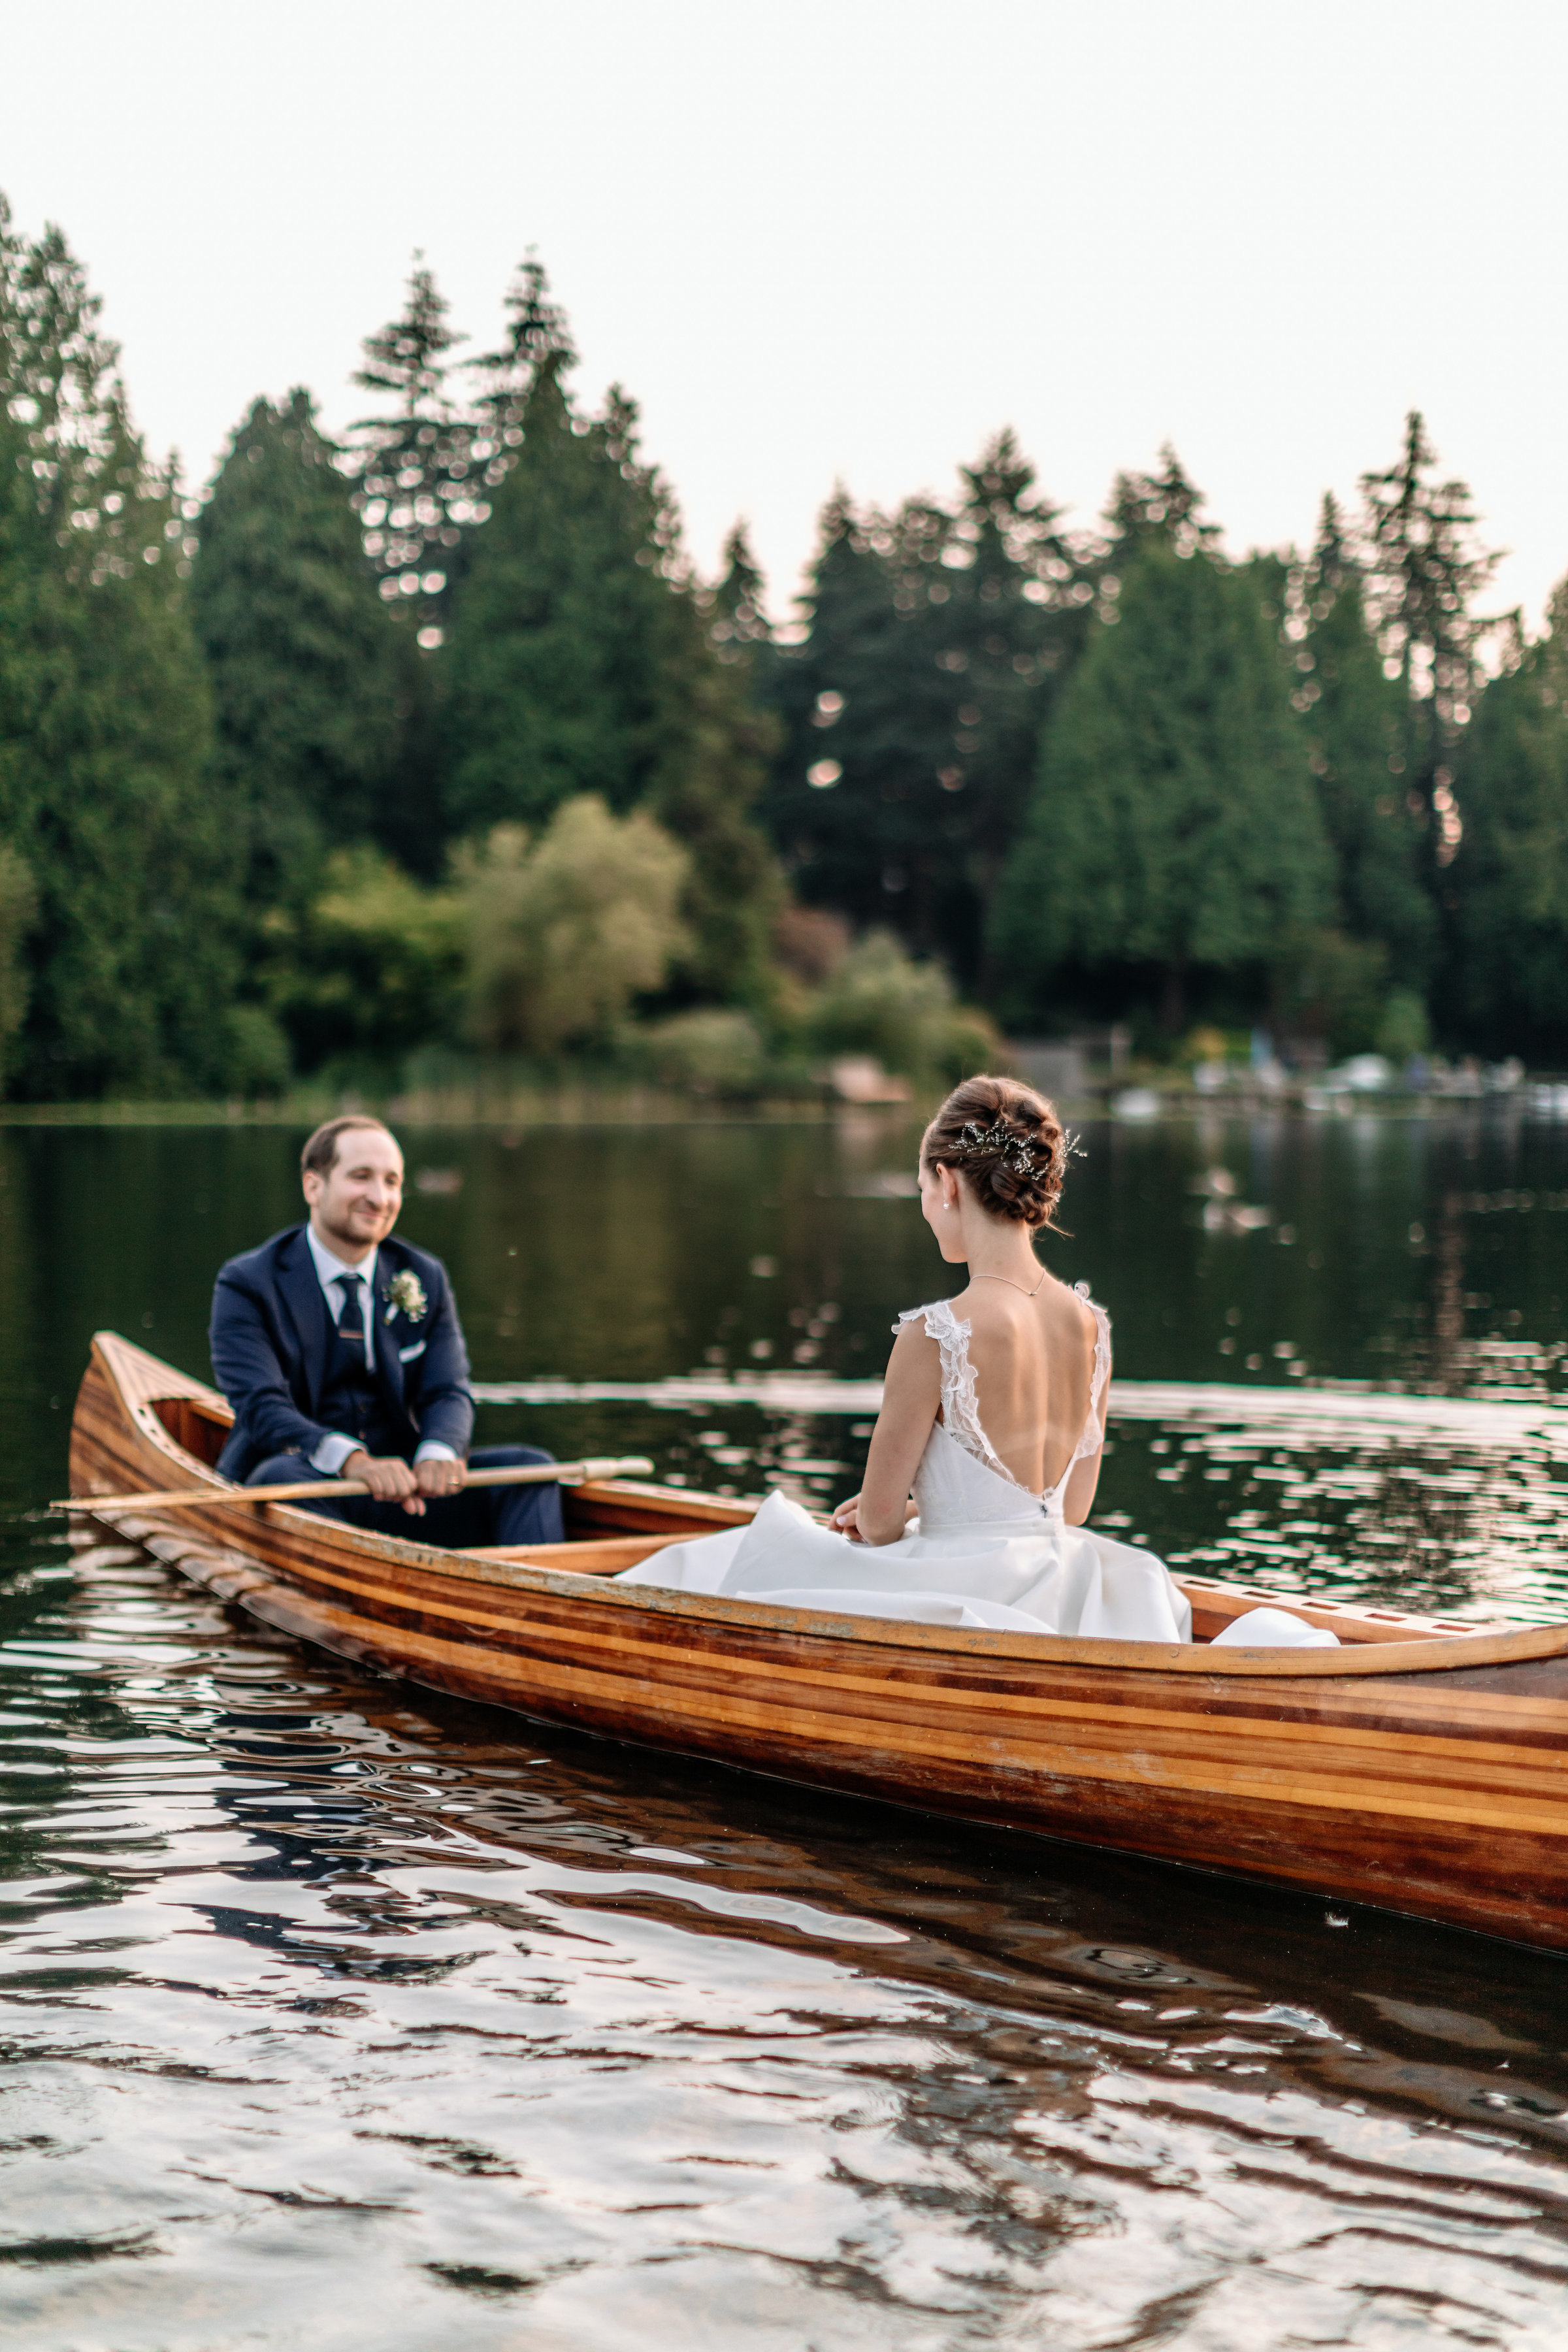 wedding canoe photos